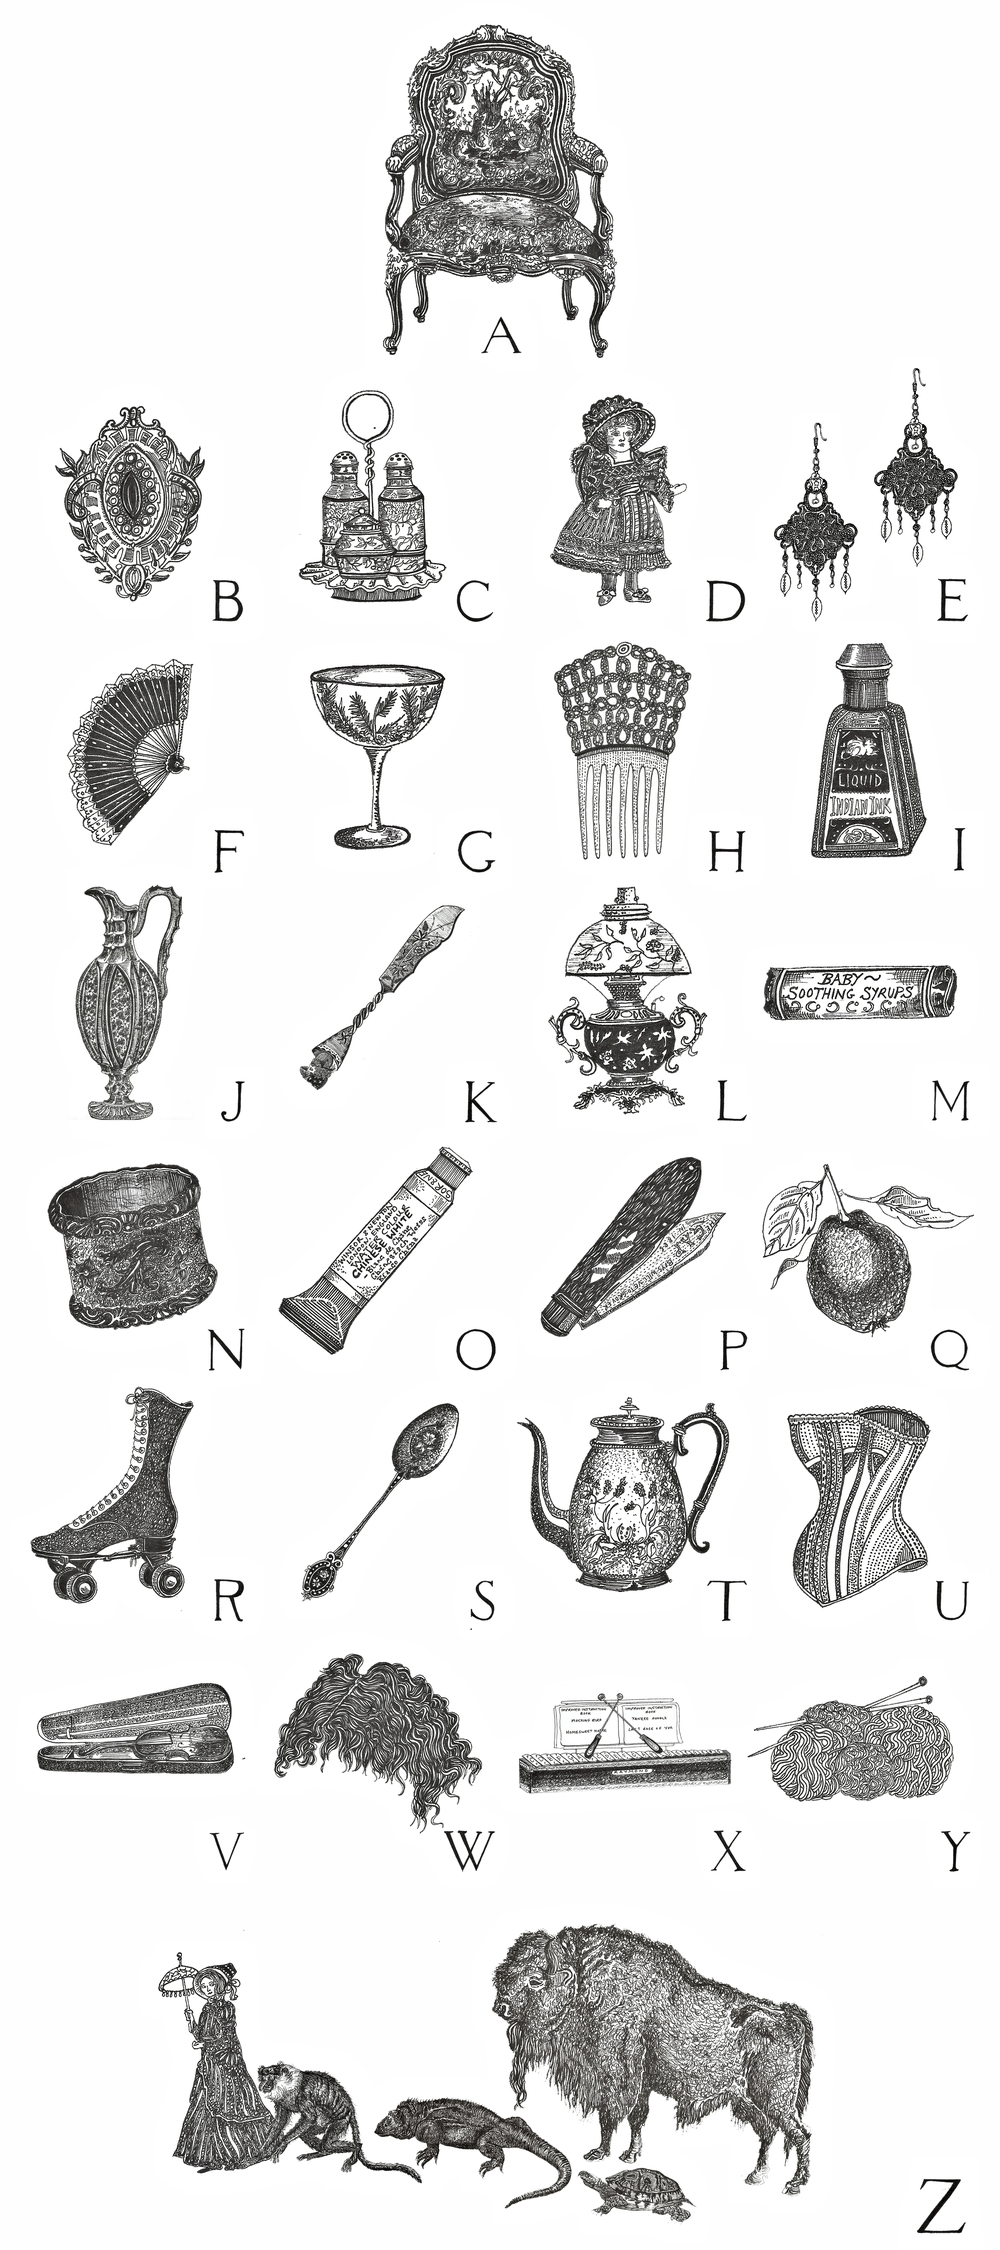 A-Z of Victoriana    Association of Illustrators, Images 37 Competition Entry    February 2013   Series of 26 detailed pen and ink illustrations of Victorian goods and merchandise, collected together to form a visual A-Z guide of the era.